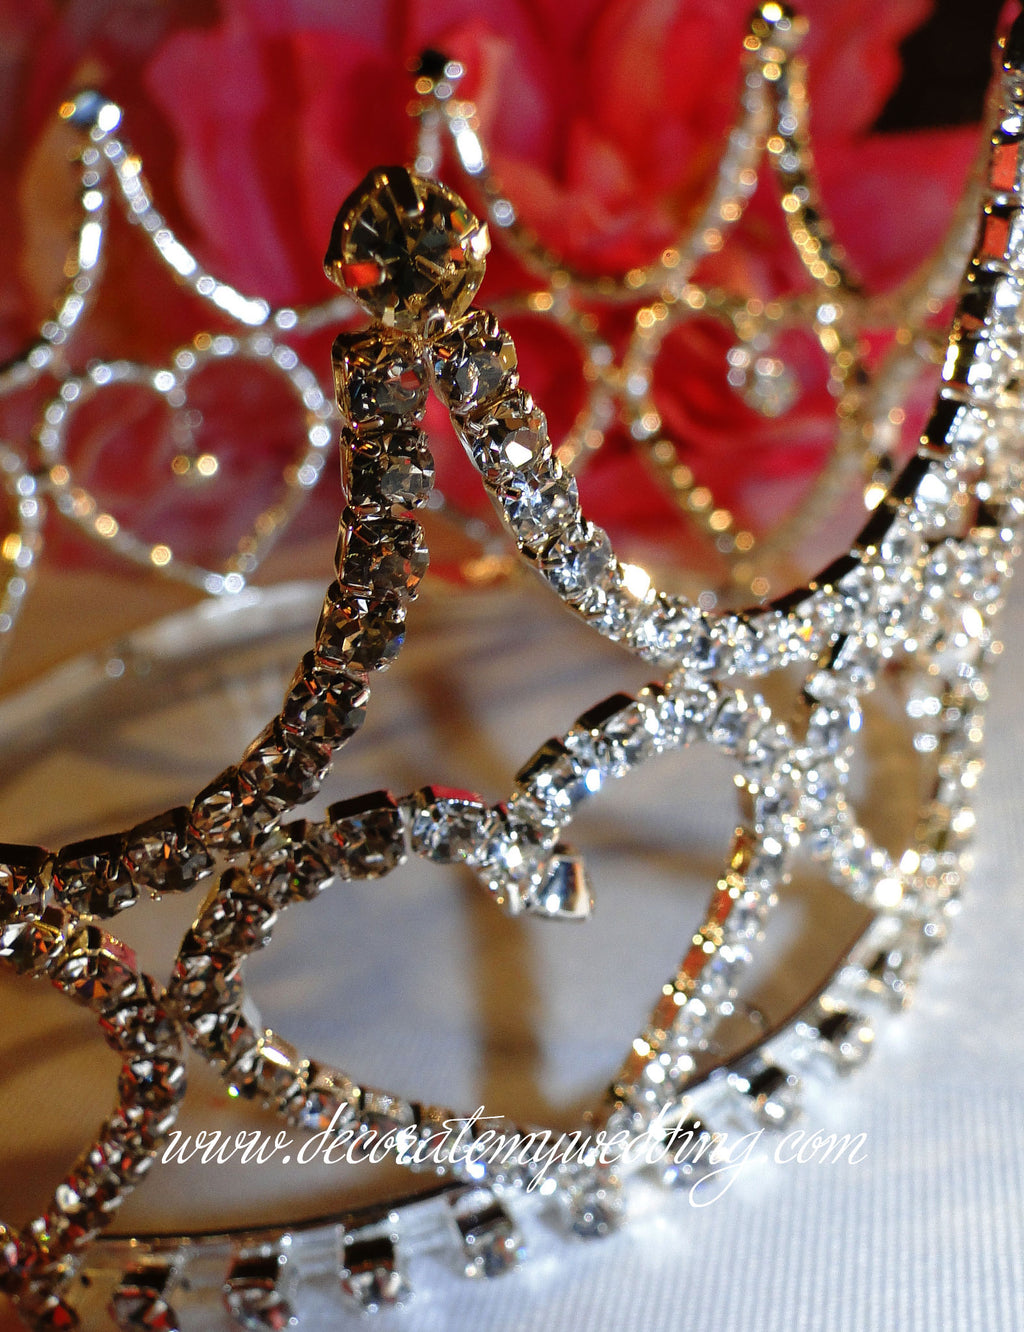 This tiara cake crown has a heart shaped design with a dangling tiny crystal heart in the center. Completely covered with clear Swarovski rhinestones.